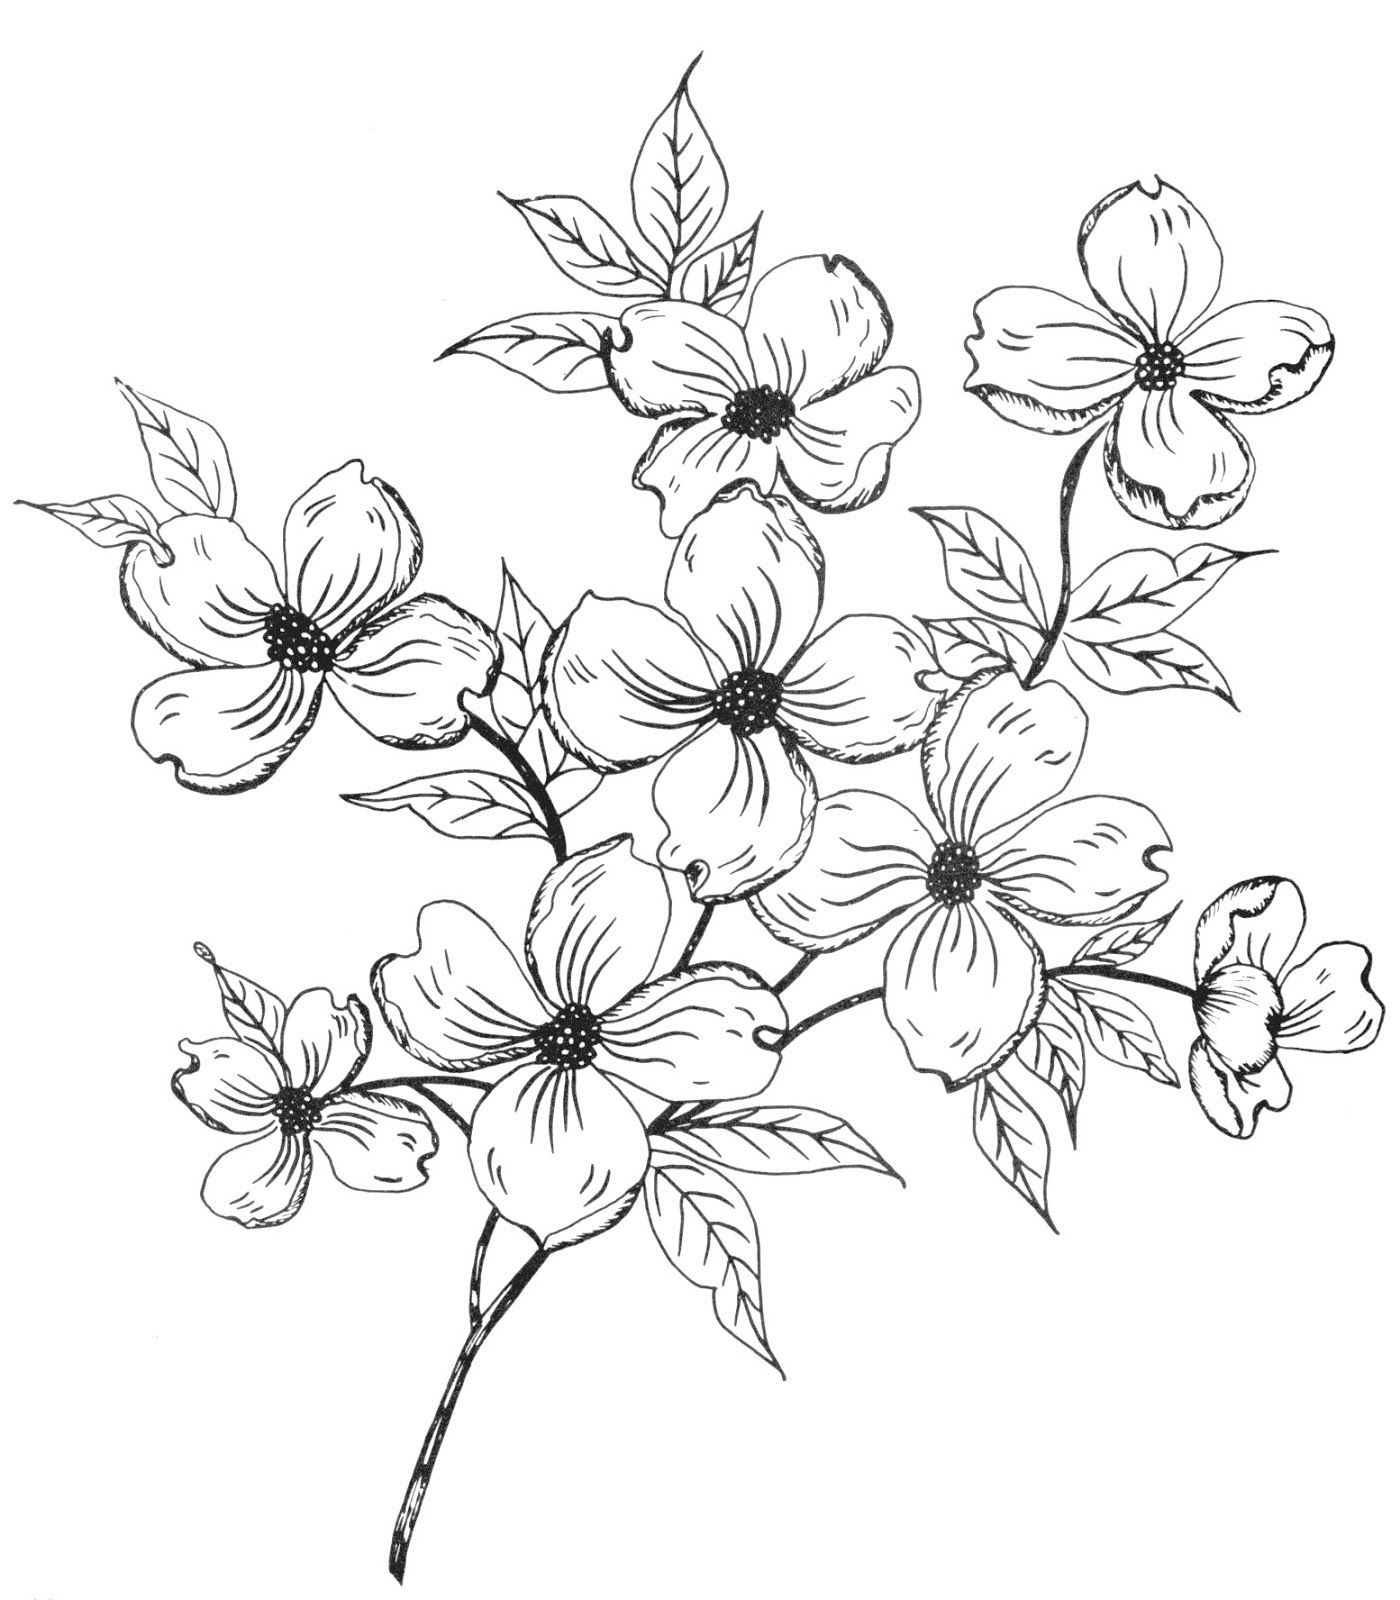 Coloring pictures of flowers and trees - Digital Two For Tuesday Flowers Everywhere